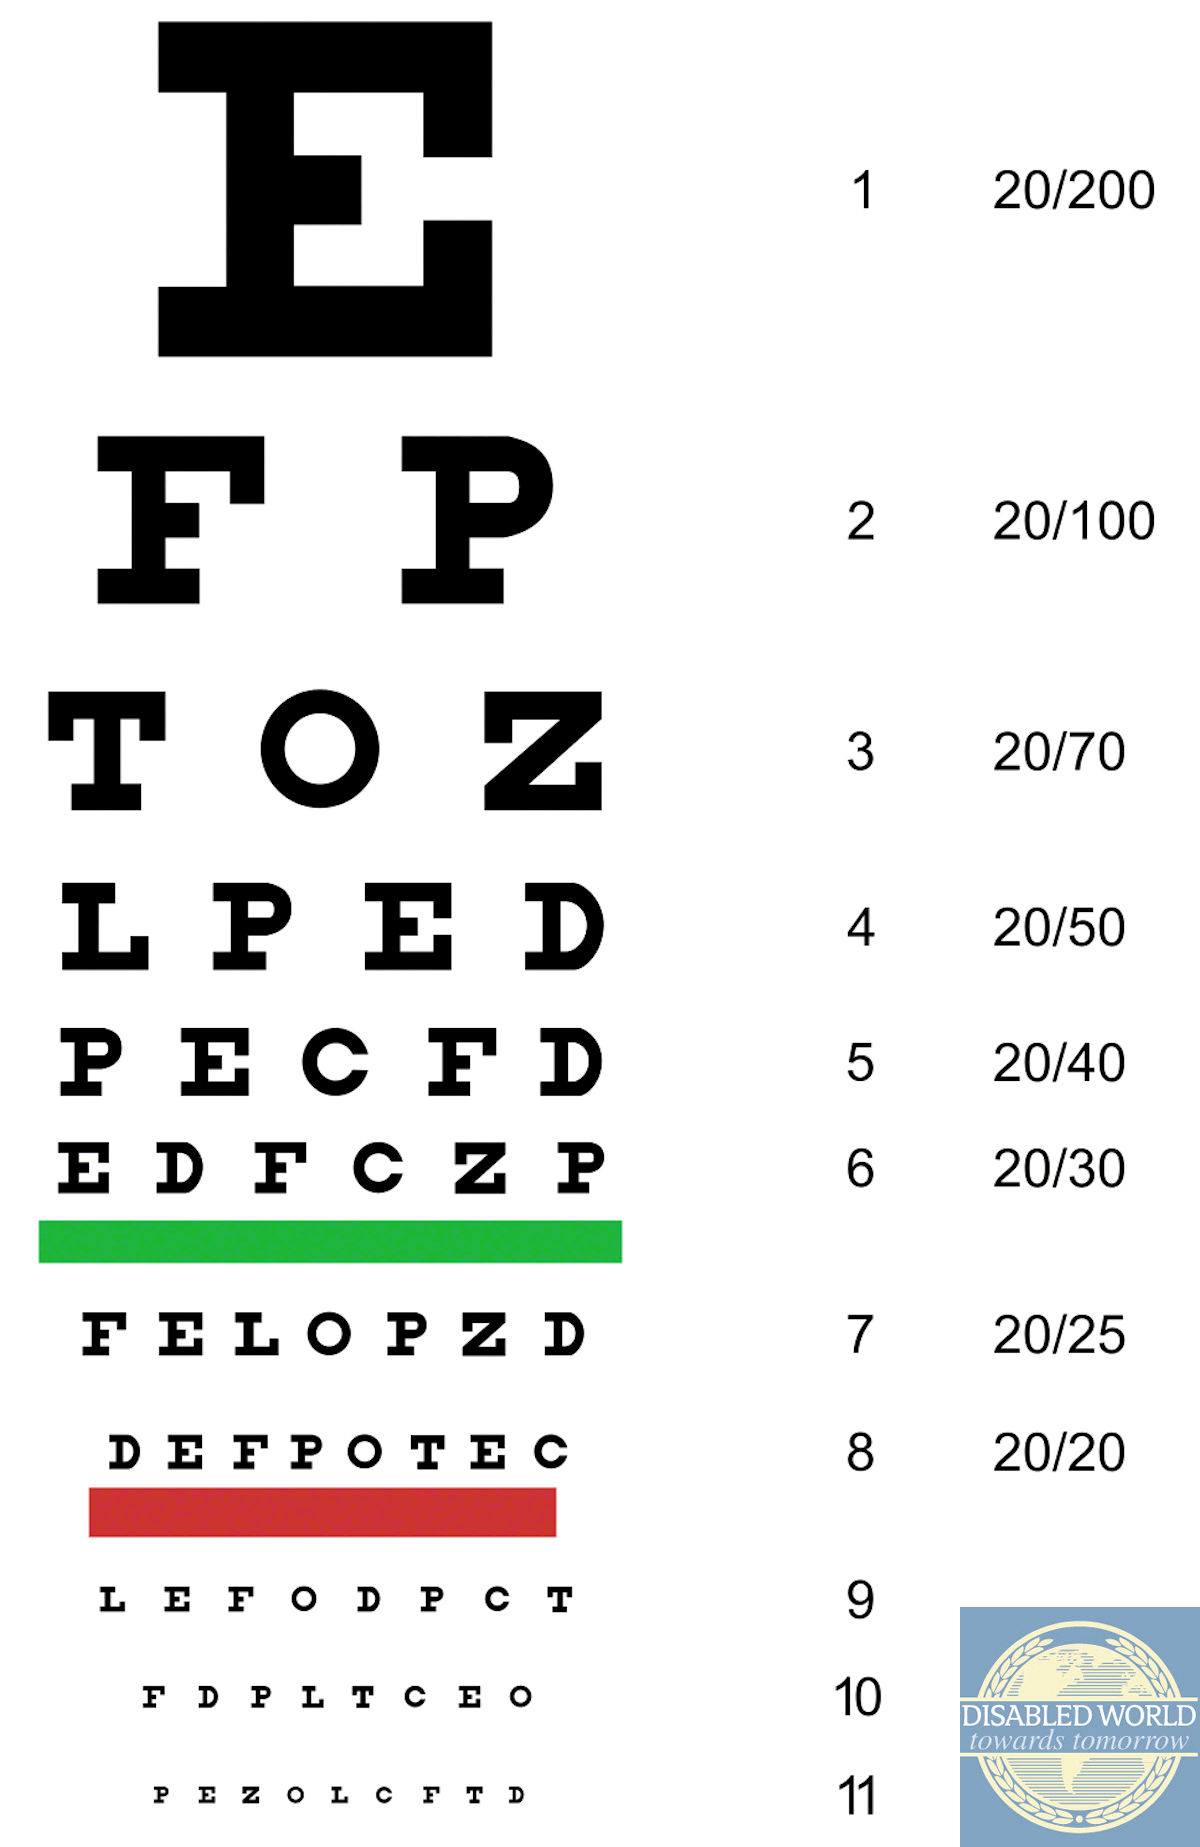 Standard free printable Snellen Eye Chart for home or office use.